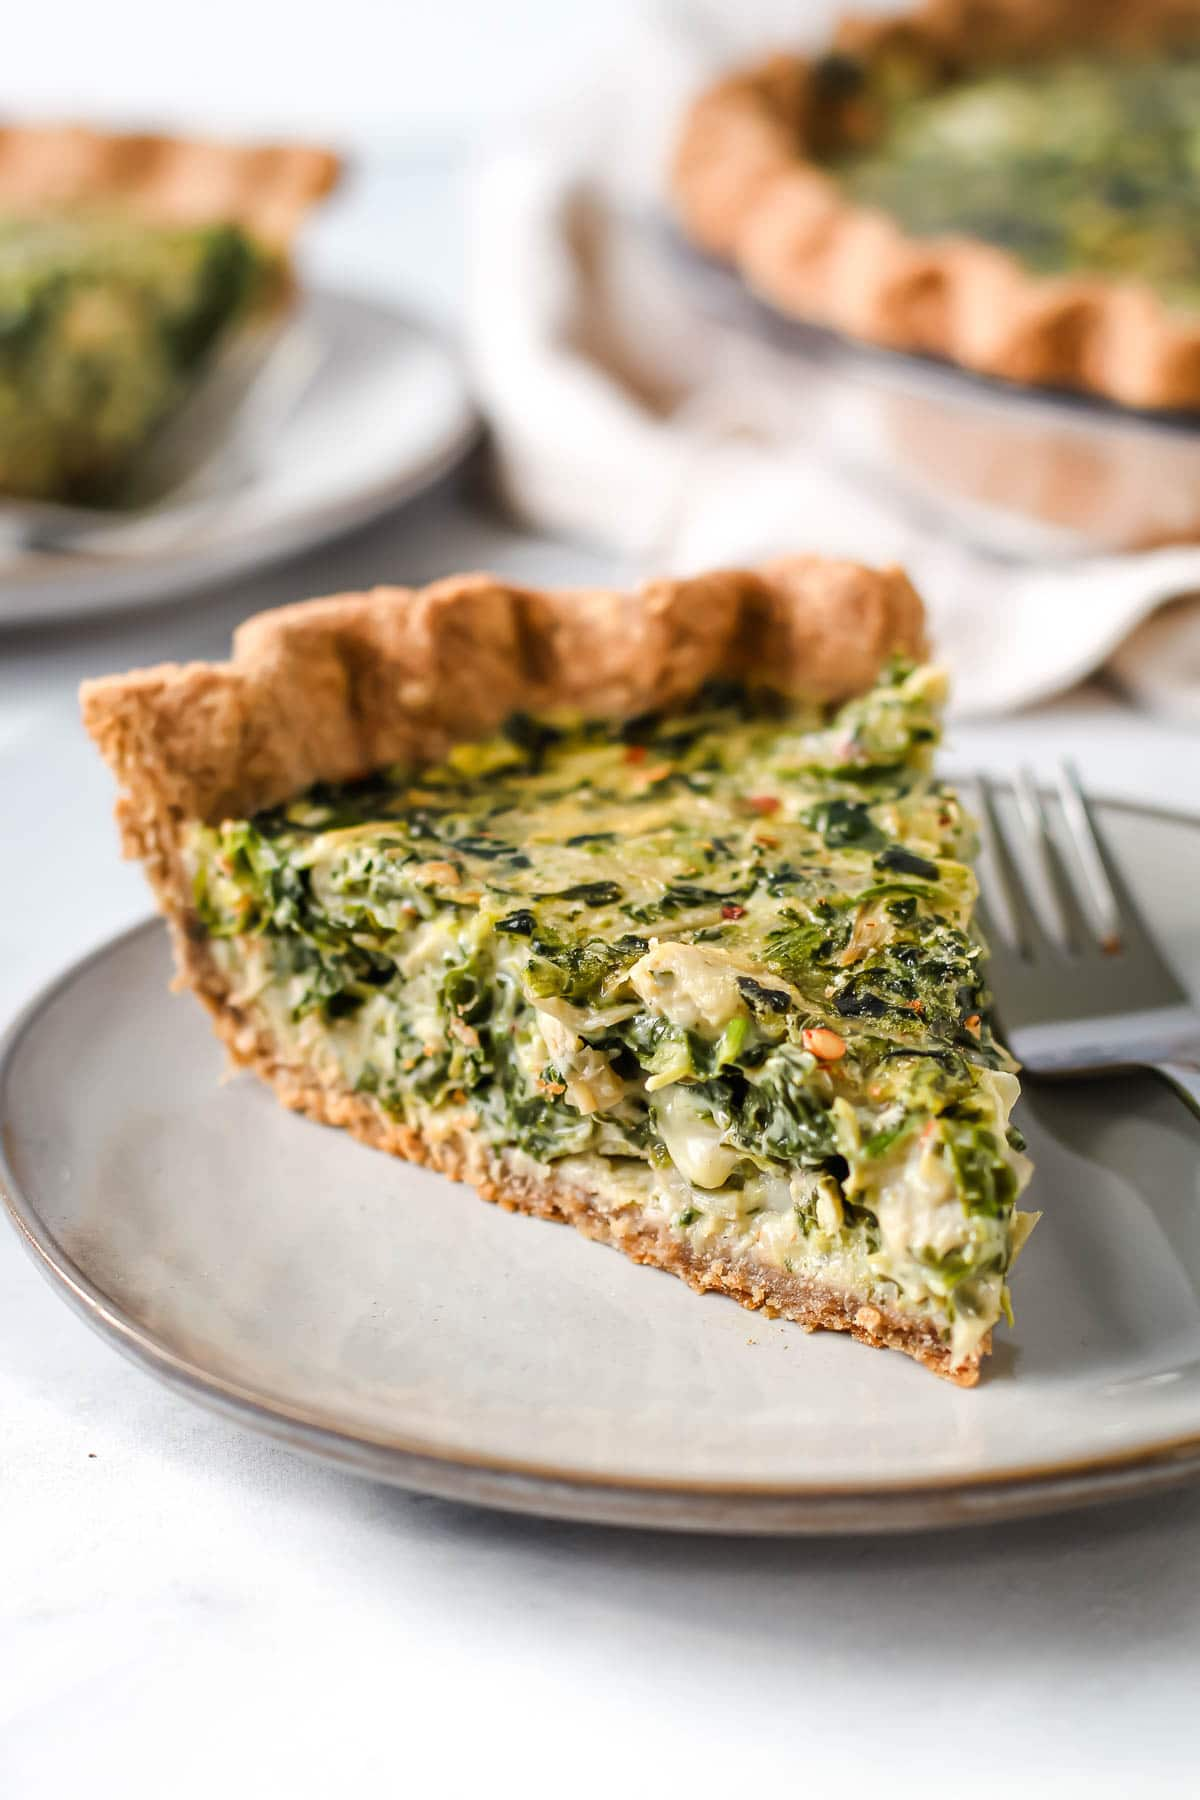 Slice of spinach artichoke quiche on a plate.